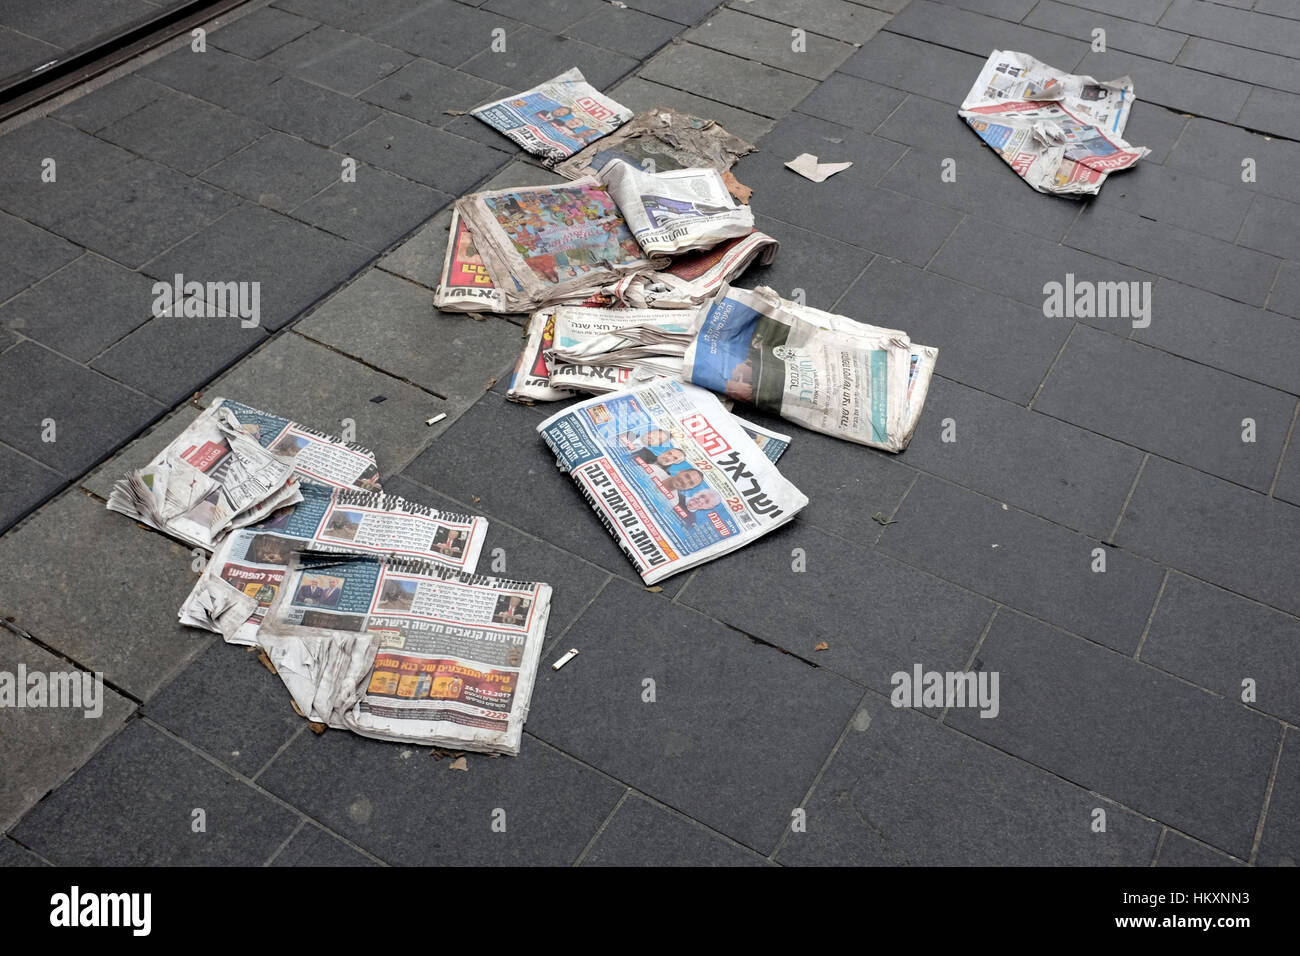 Stack of Israel Hayom national Hebrew language free daily newspaper thrown discarded on the sidewalk in Jerusalem - Stock Image